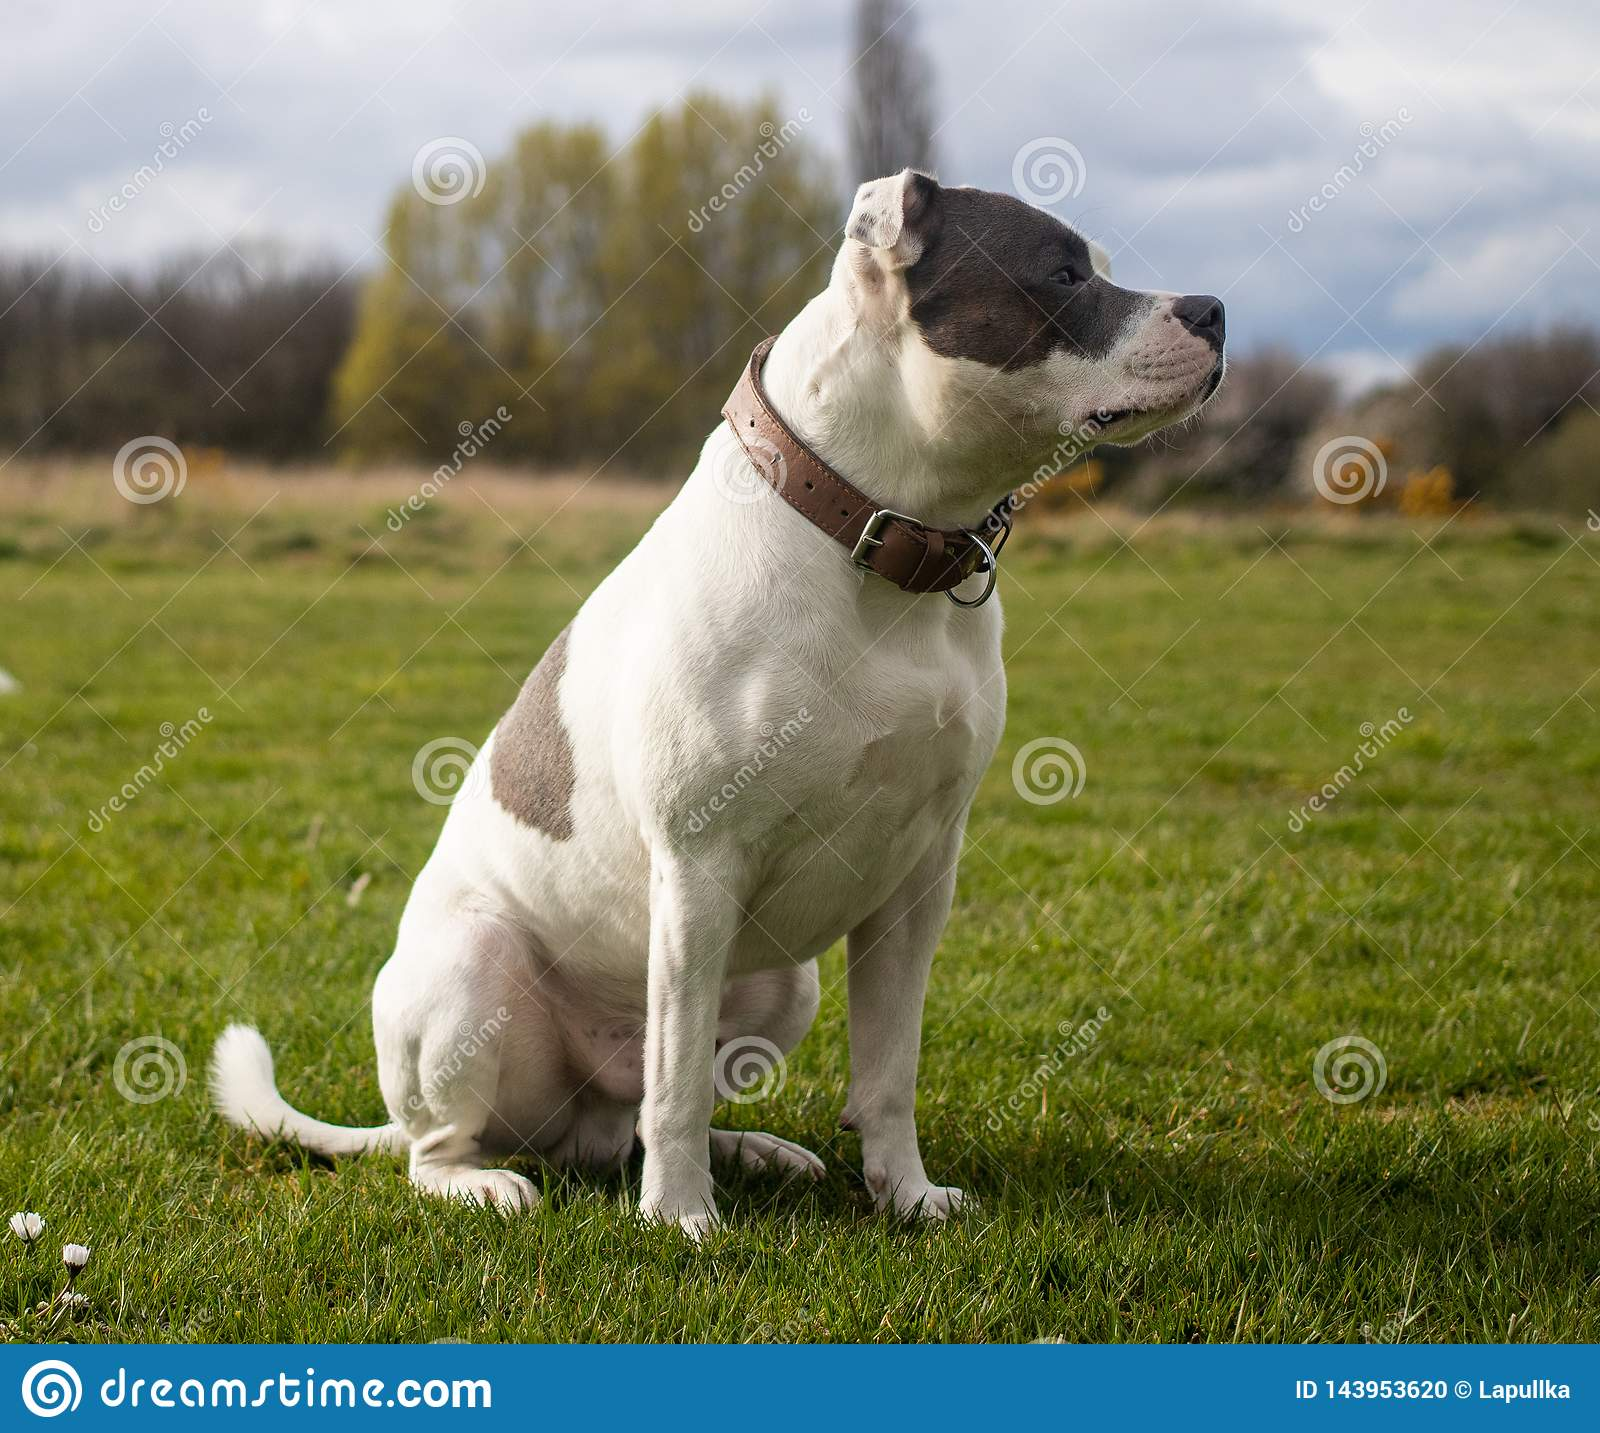 Staffordshire Bull Terrier Dog walking in park